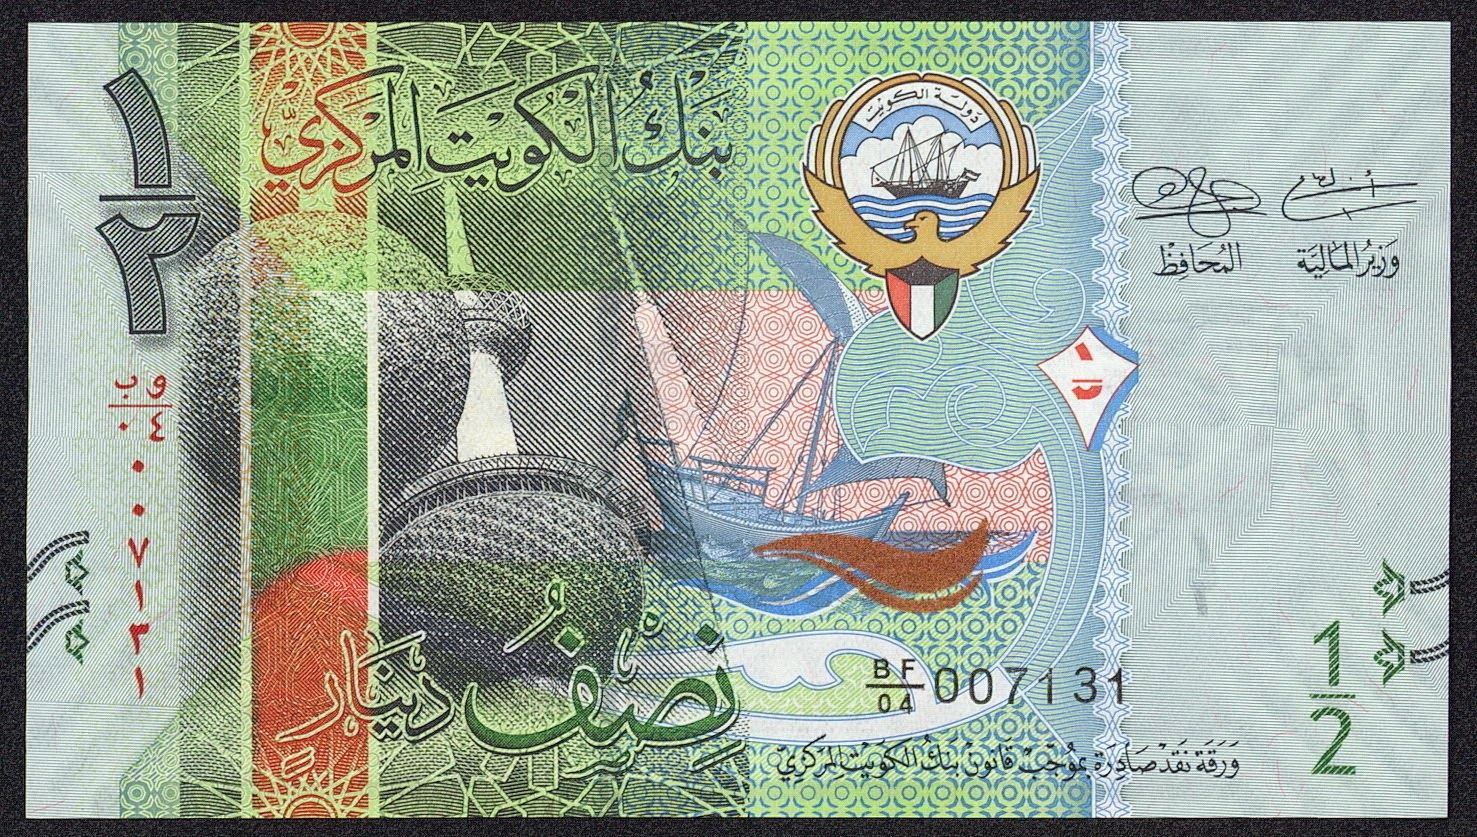 Kuwait New Banknotes Half Dinar bank note 2014